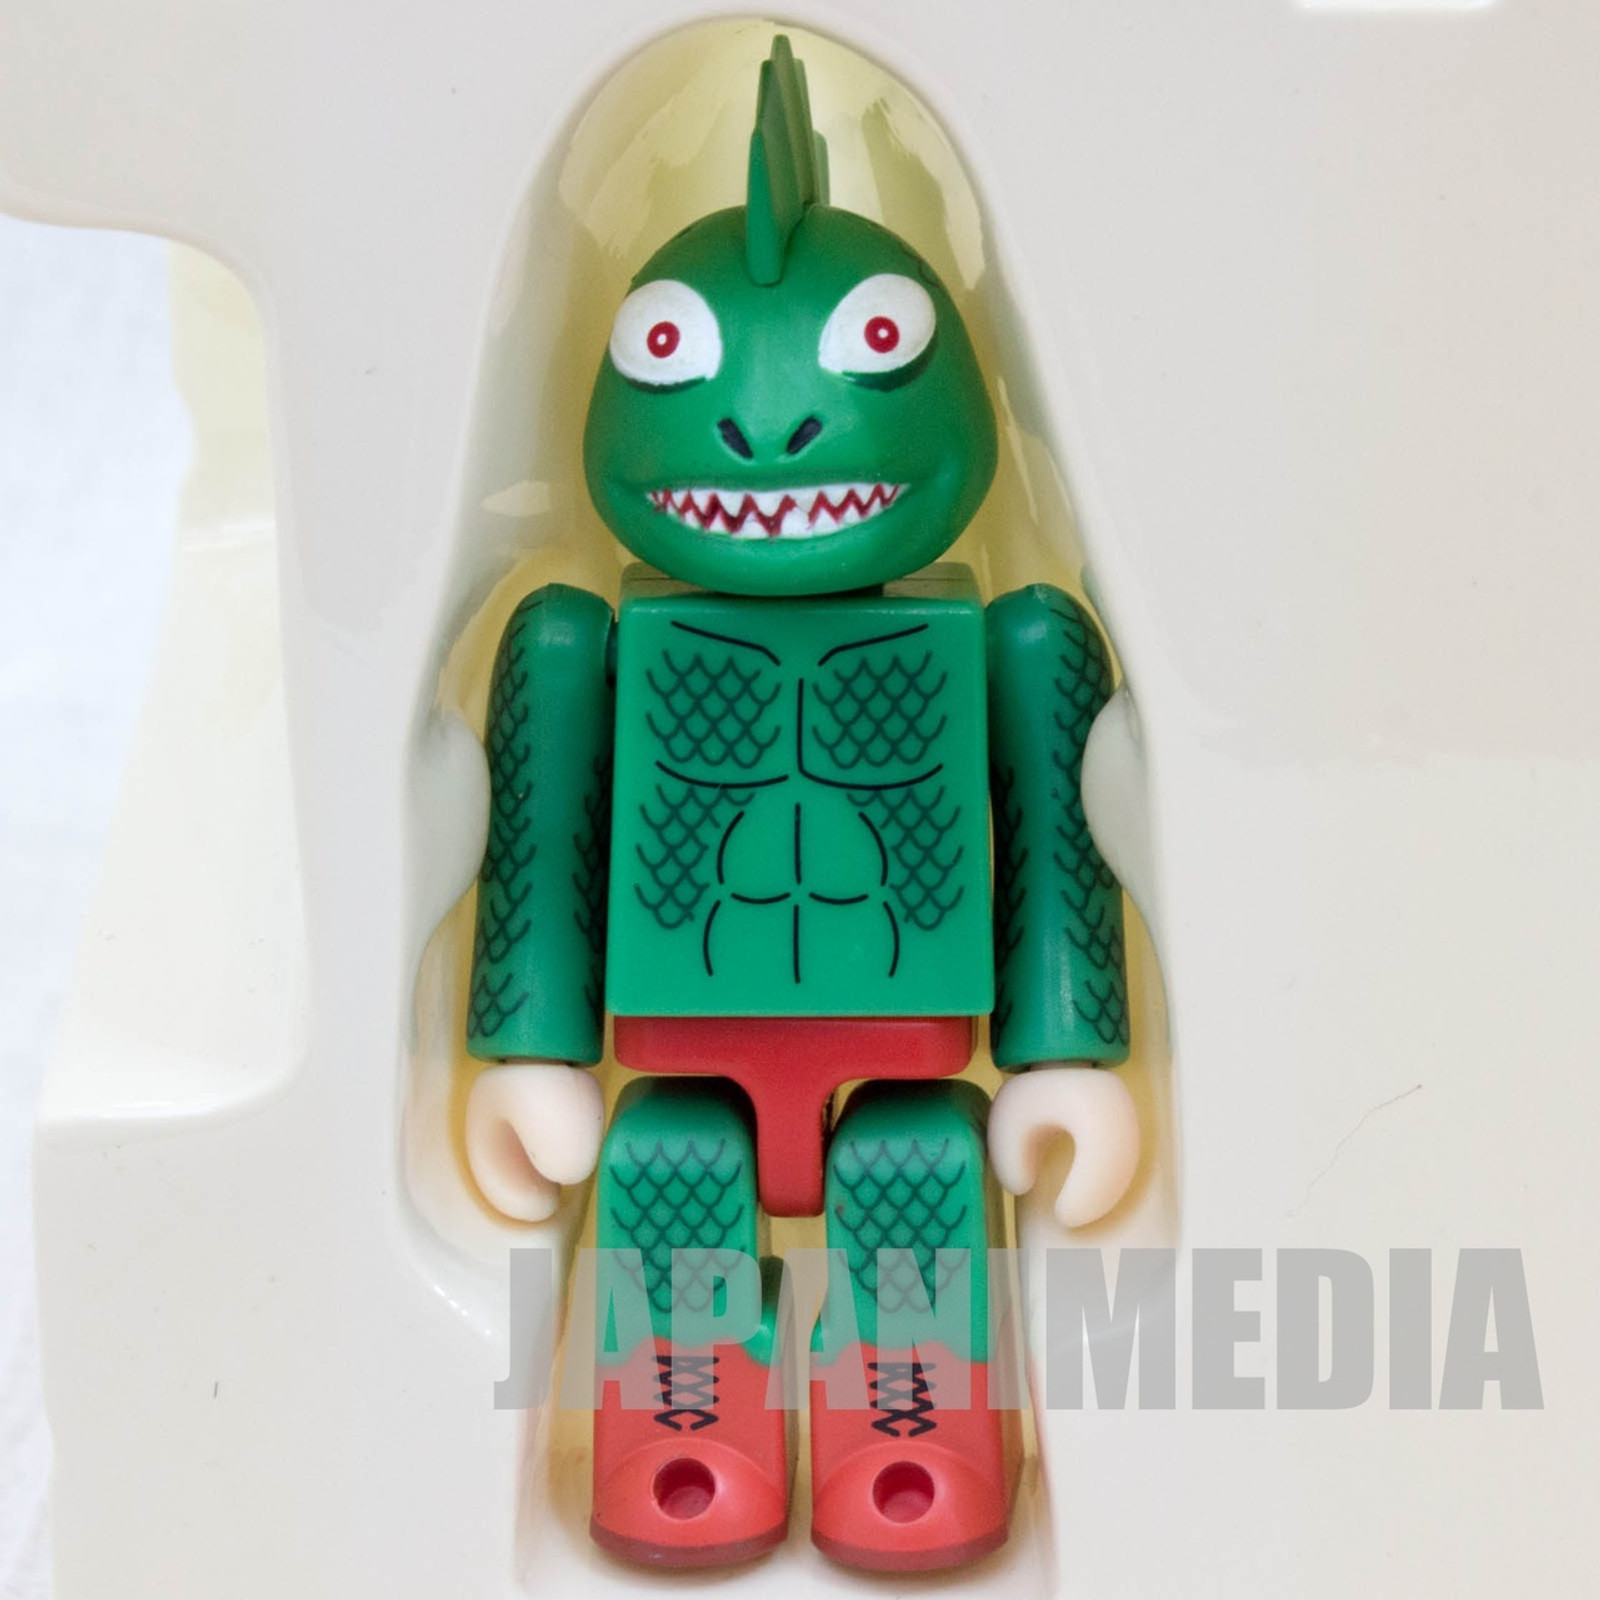 Tiger Mask Series 1 Piranhan Kubrick Medicom Toy JAPAN FIGURE ANIME